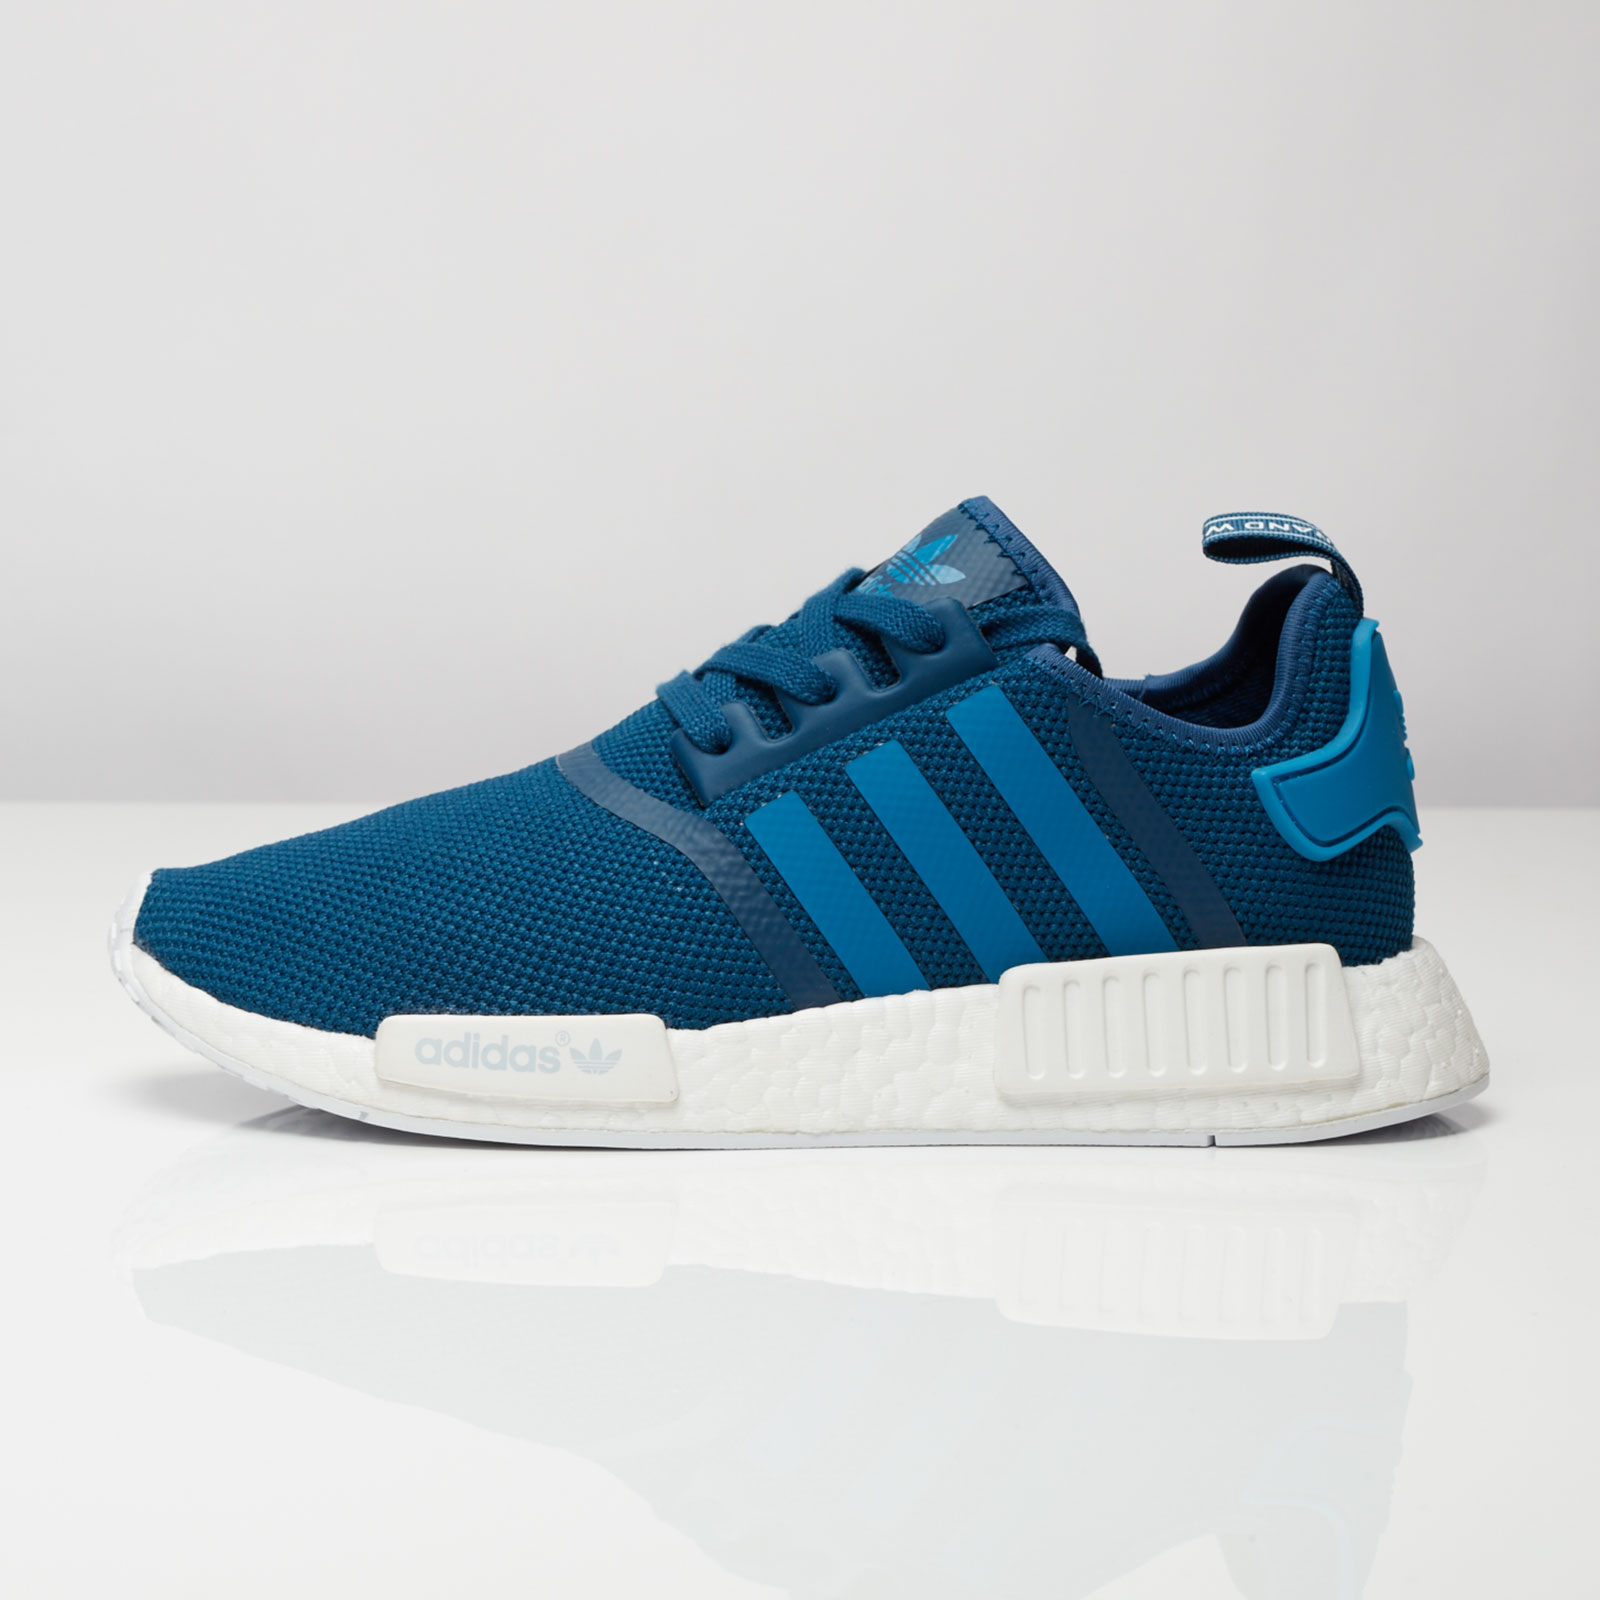 new product a0d4b 4dca4 adidas NMD R1 - S31502 - Sneakersnstuff   sneakers   streetwear online  since 1999